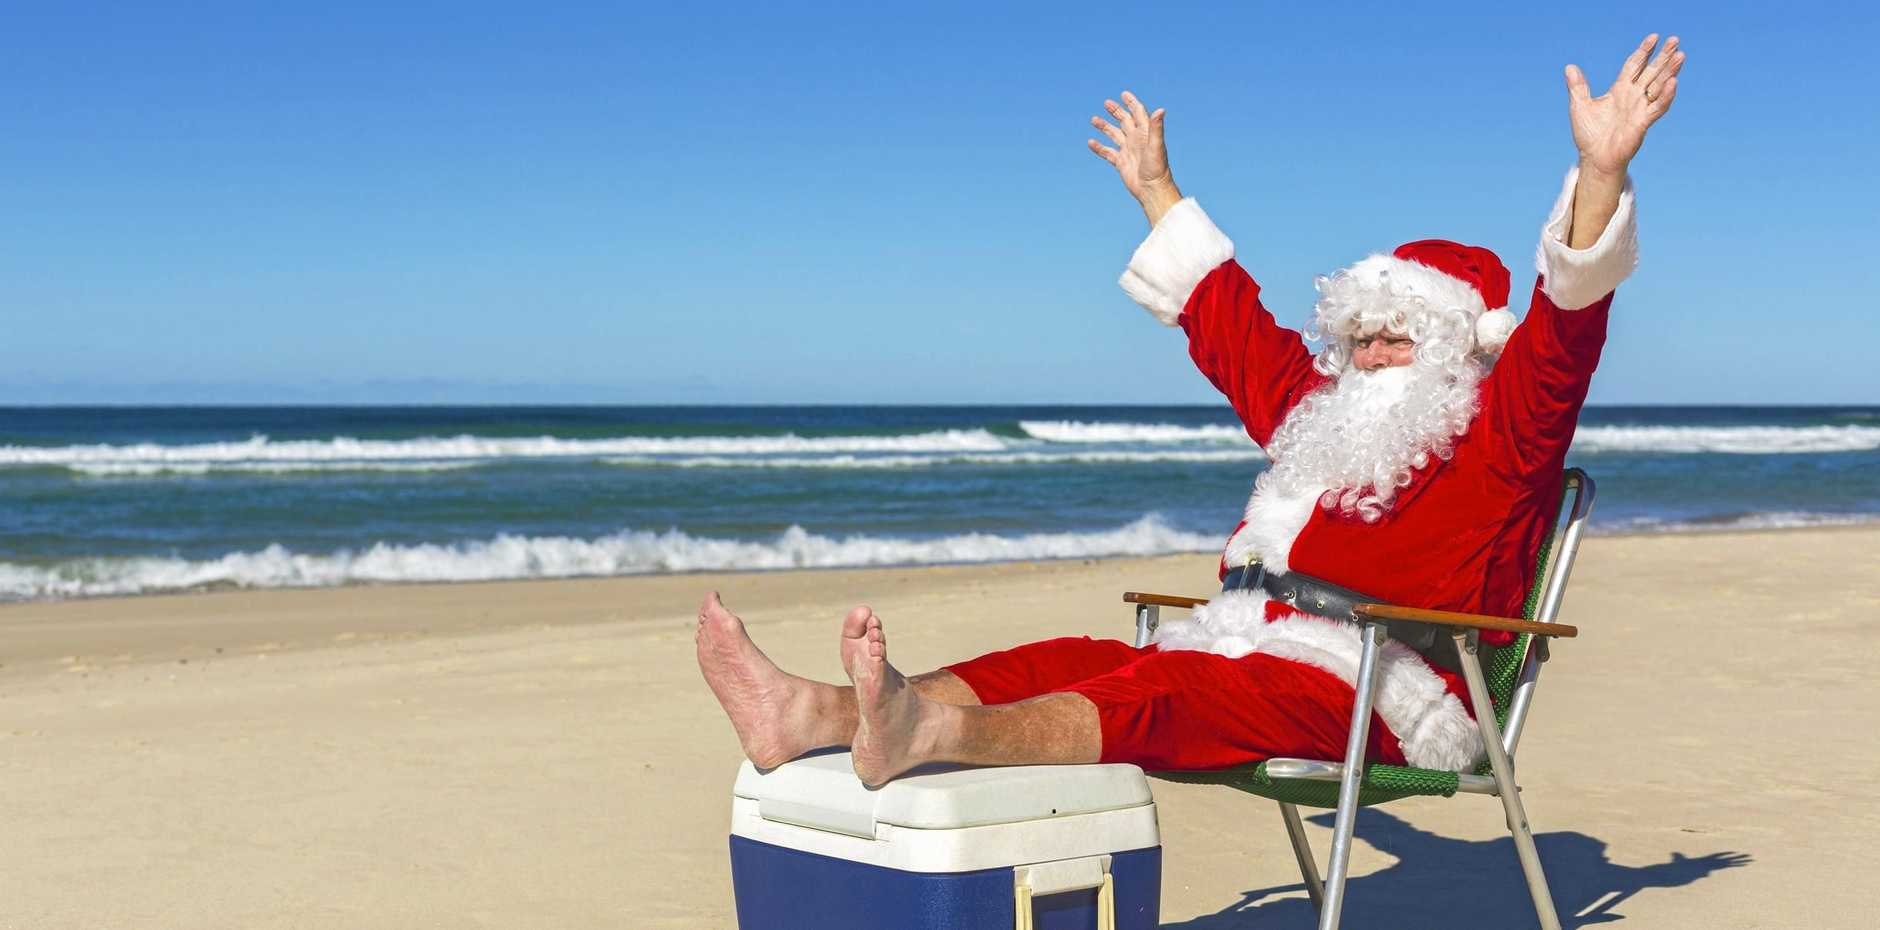 CLAUS FOR CELEBRATION: Whether you beach it or backyard it, make Christmas special by doing what works for you.